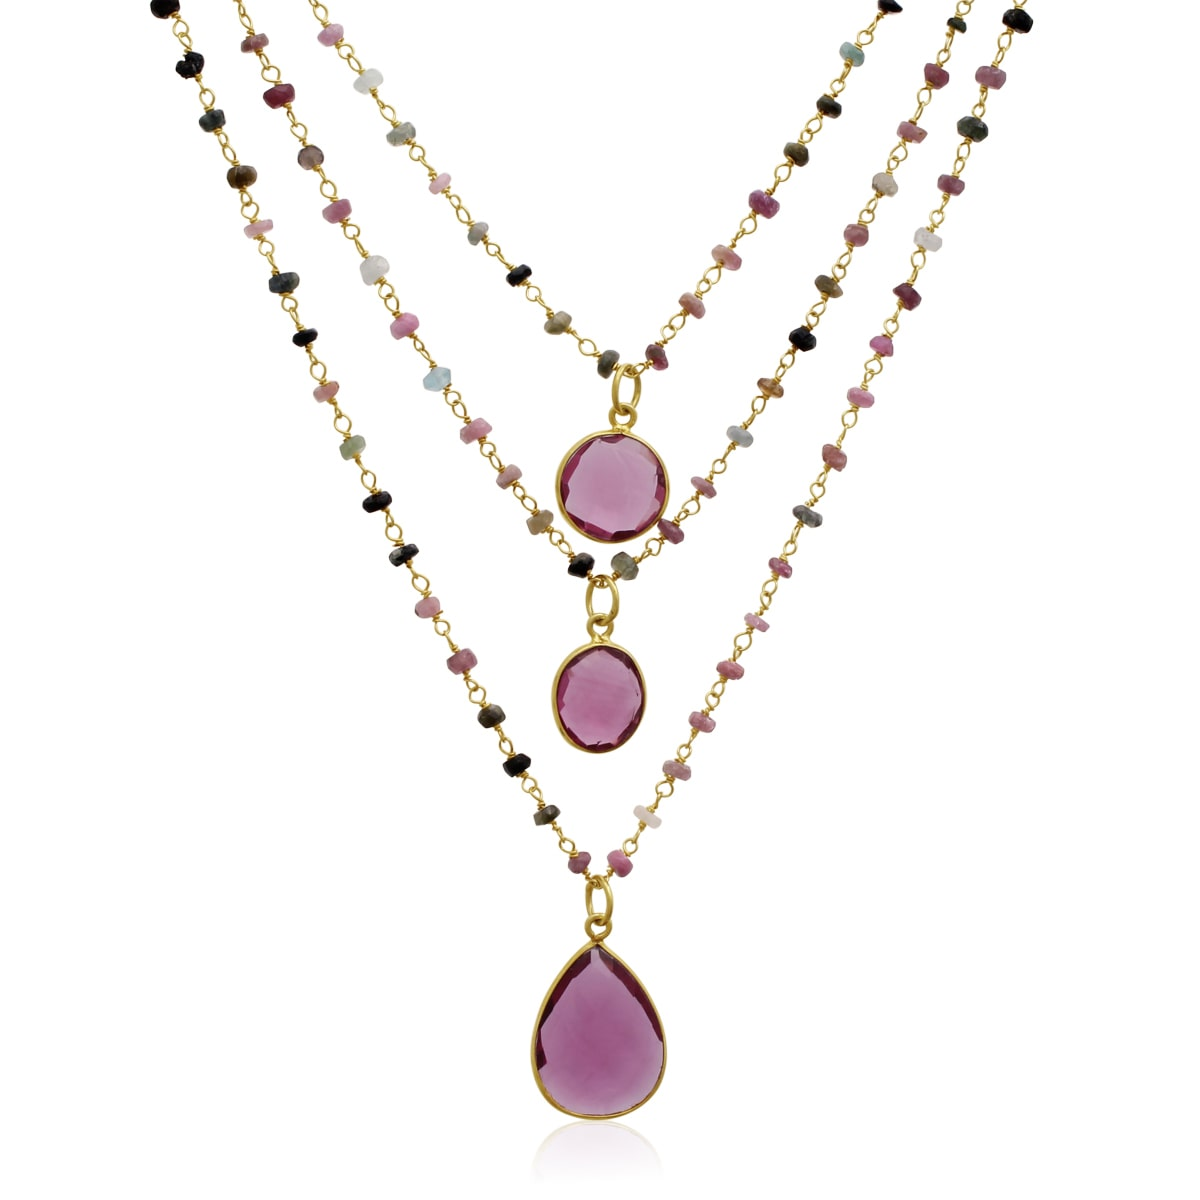 SuperJeweler Yellow Gold Over Sterling Silver 24 TGW Pink Tourmaline Triple Strand Beaded Necklace, 26 Inches by Overstock